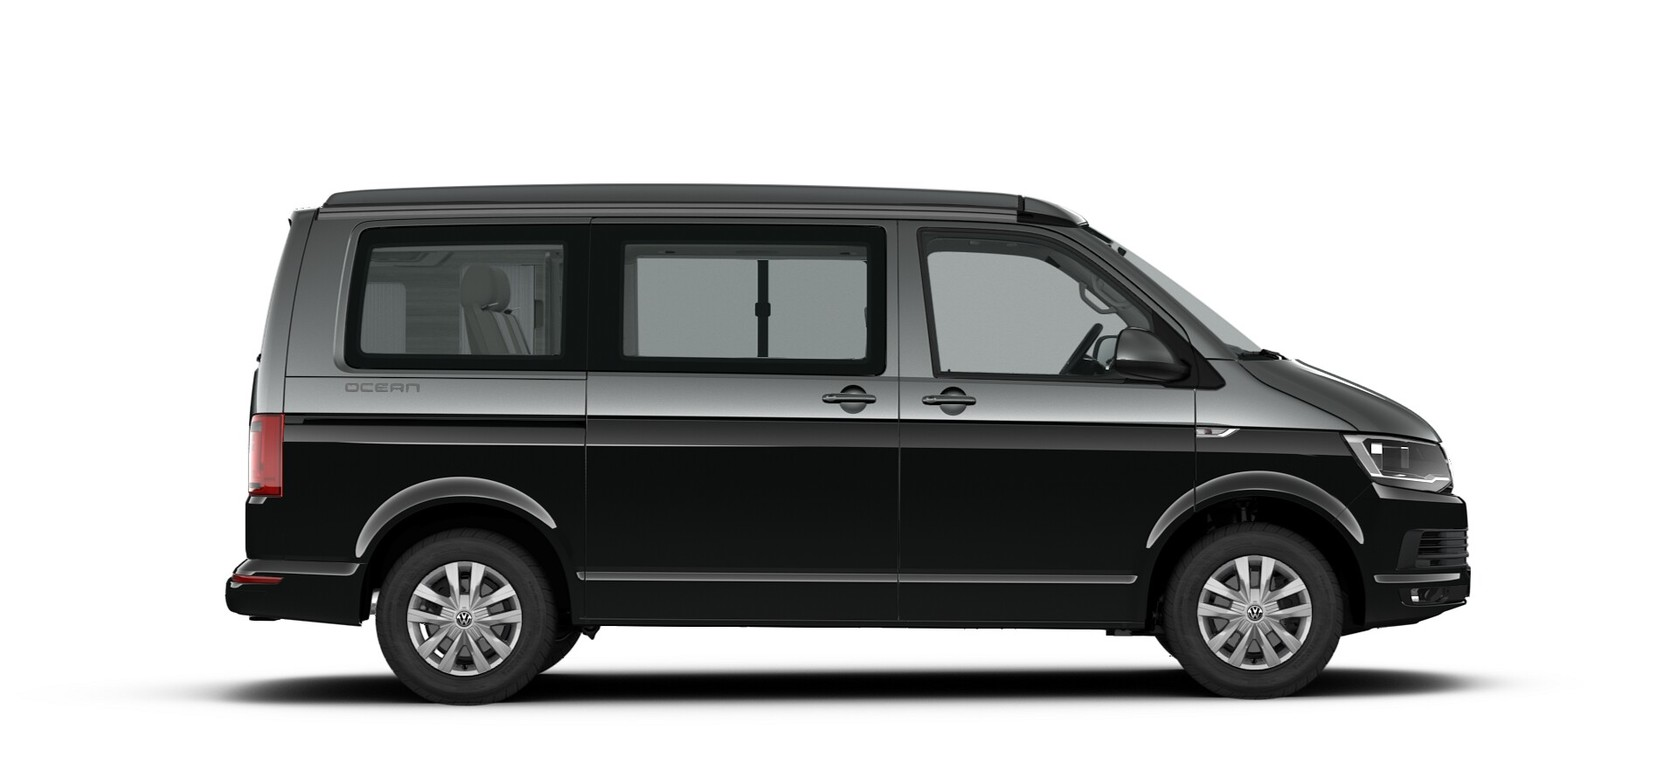 Deep Black/Indium Grey two tone parel/metallic lak - Volkswagen California Ocean